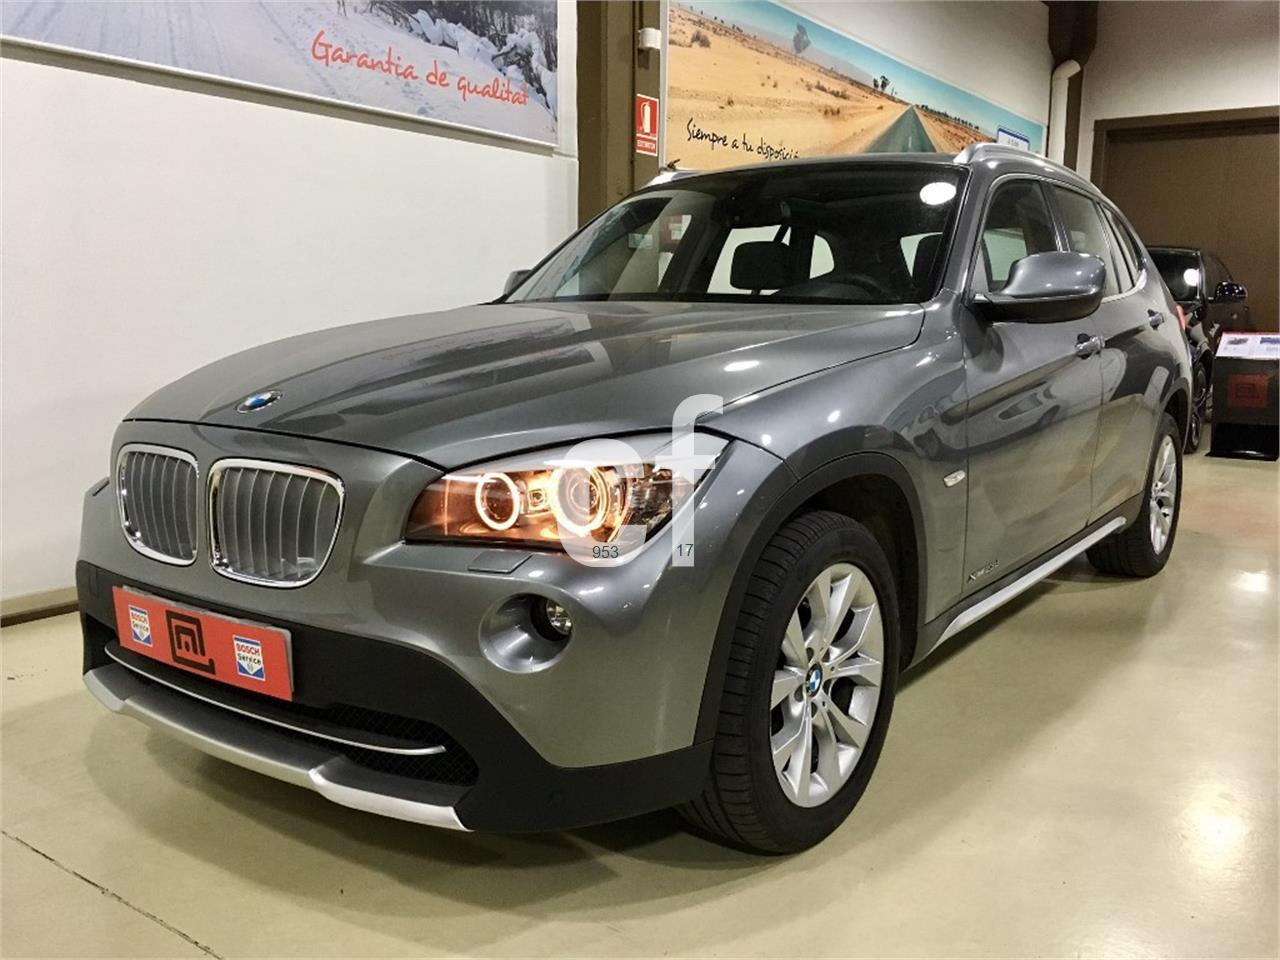 voiture bmw x1 voiture bmw x1 bmw x1 occasion prix 17 500 voiture bmw x1 vendre bmw x1. Black Bedroom Furniture Sets. Home Design Ideas